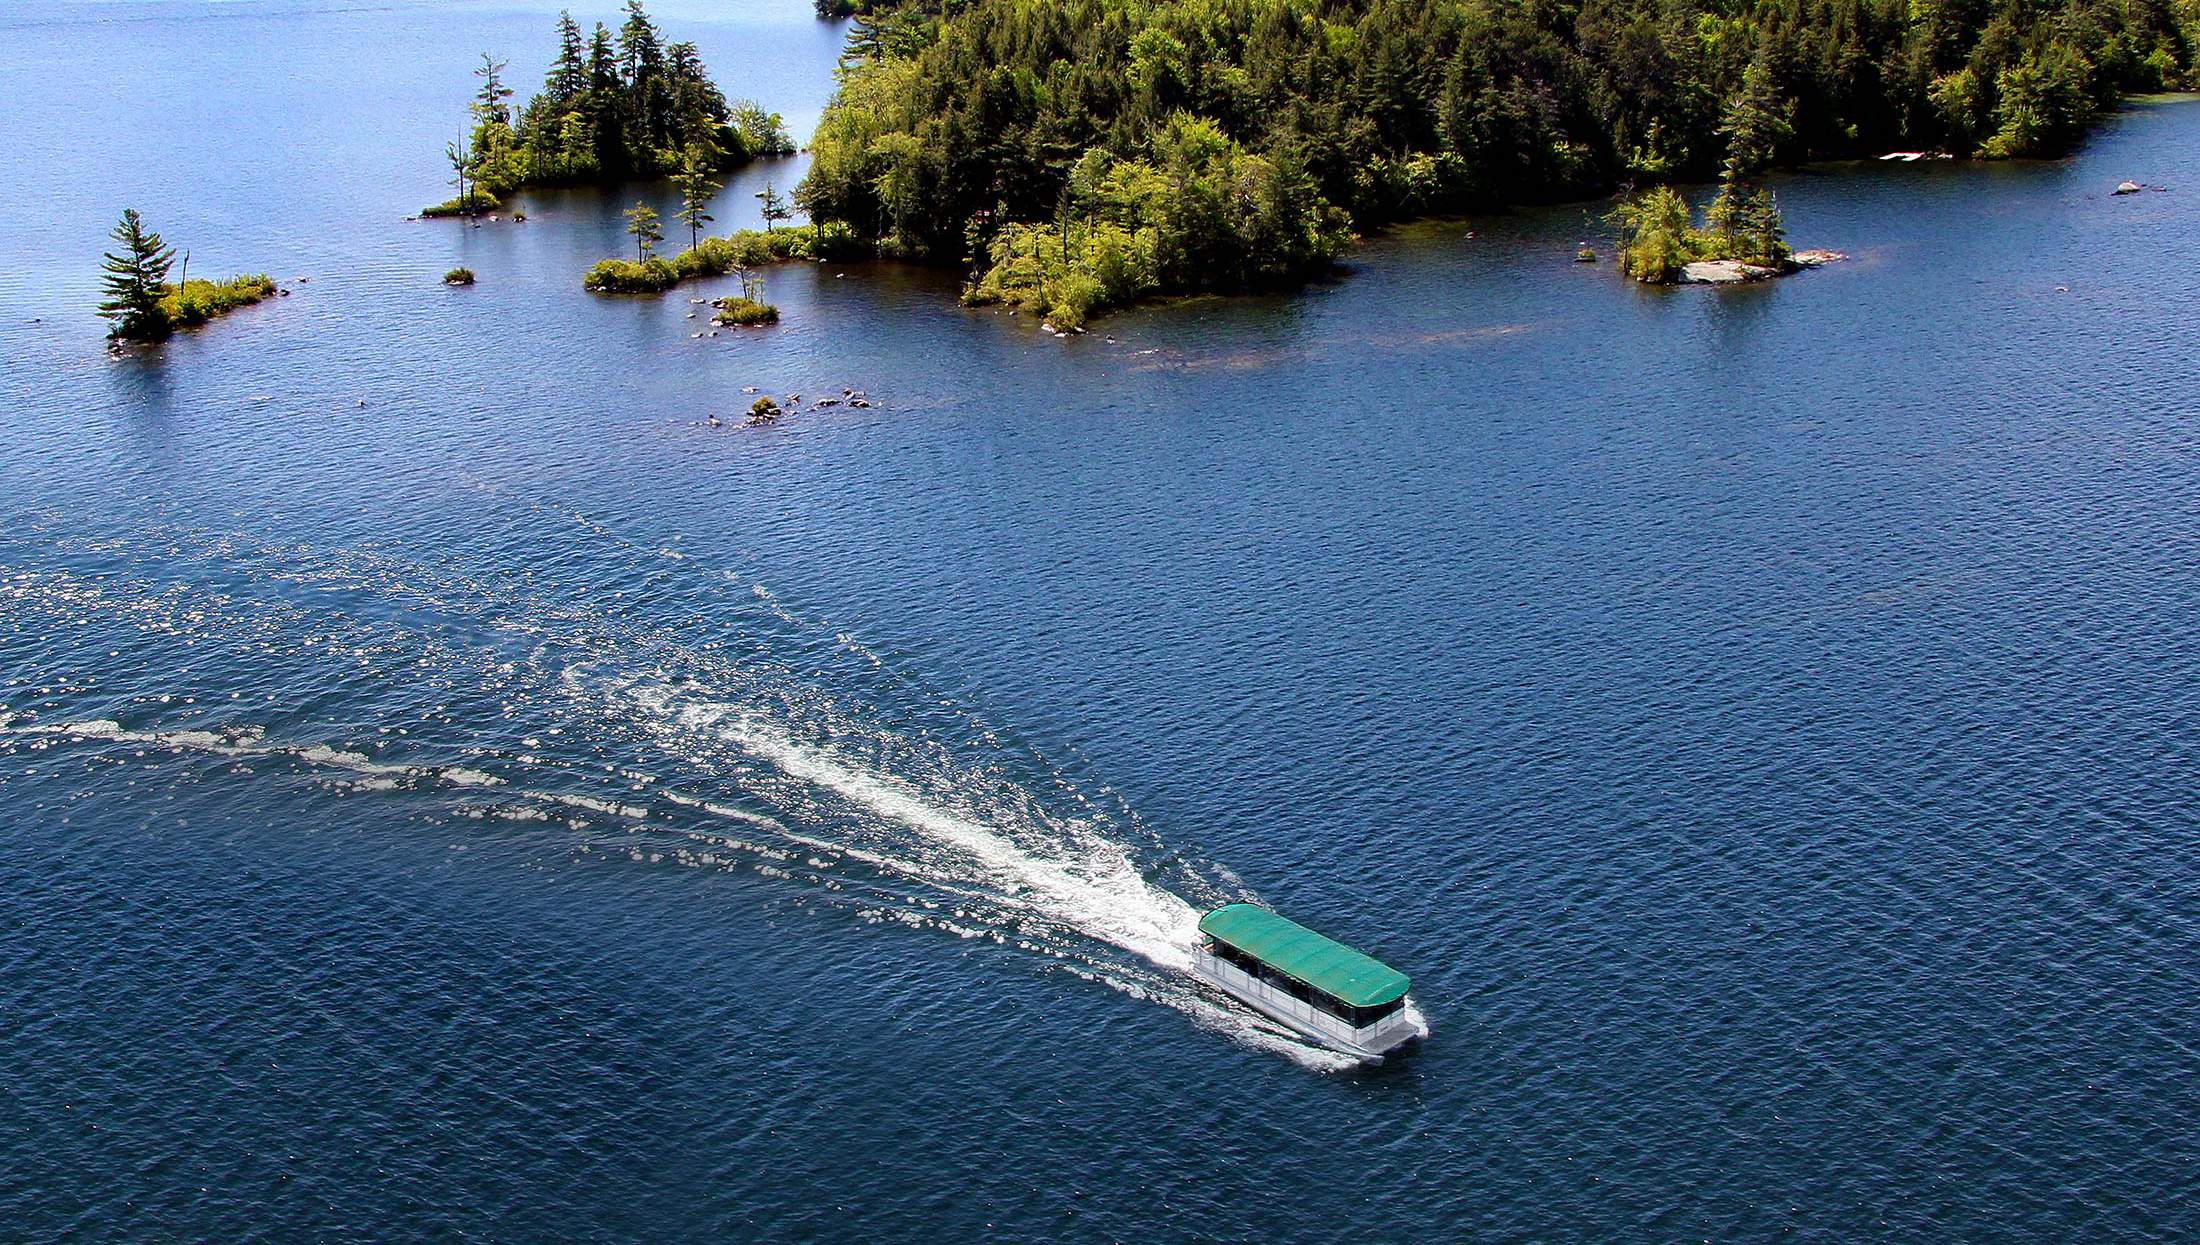 Squam Lake Cruise from the air